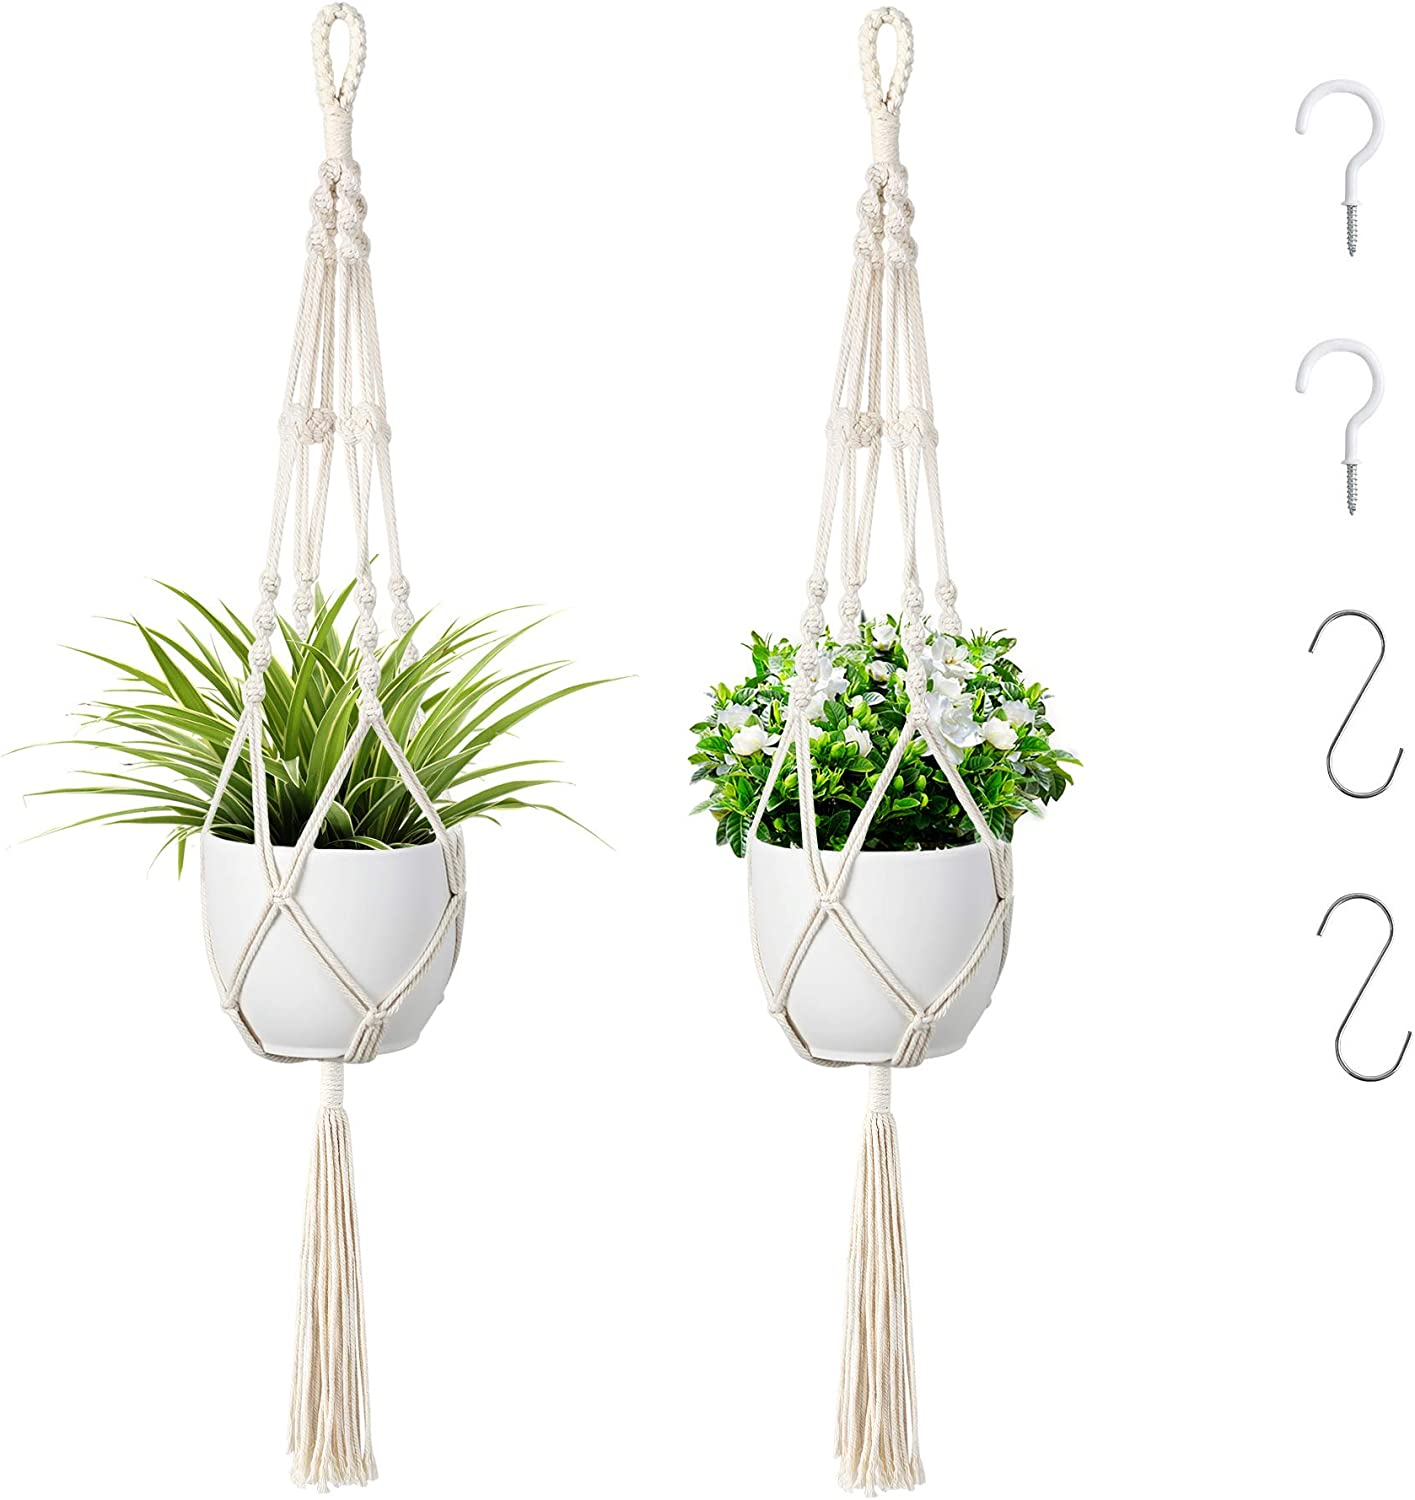 2 Pcs Plant Hangers Max 75% OFF Hanging Deco Holder Recommendation Indoor for Outdoor